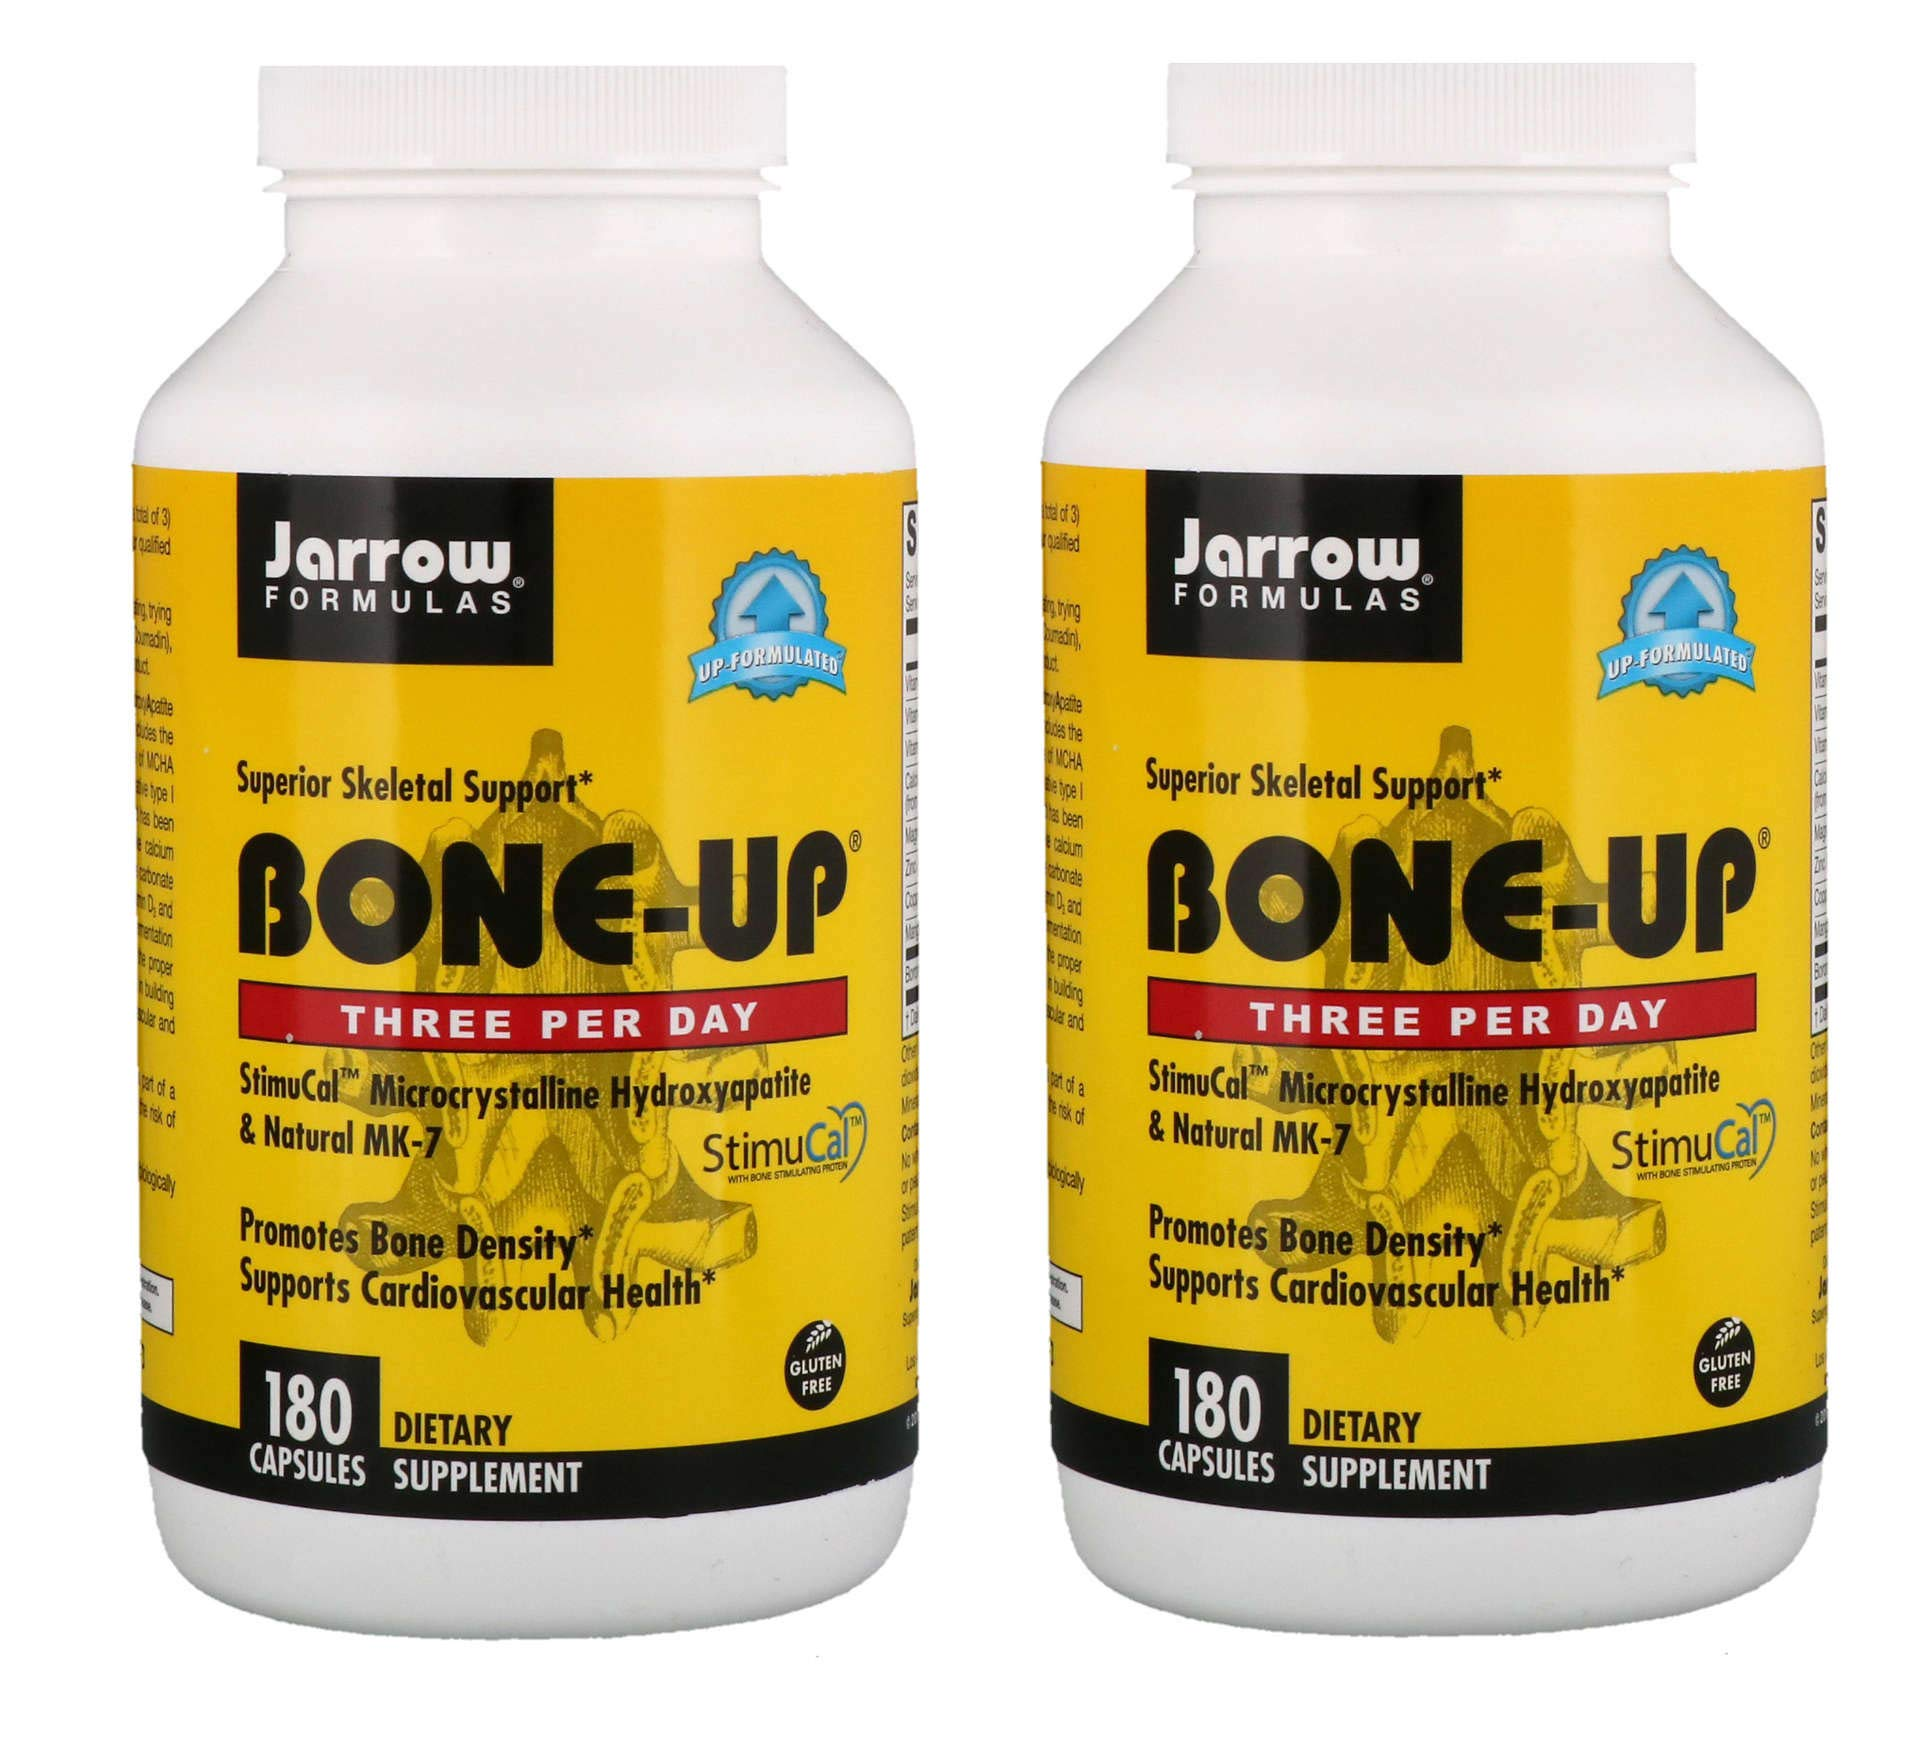 Jarrow Formulas Bone-Up Three Per Day for Superior Skeletal Support, Bone Density and Cardiovascular Health with StimuCal, Microcrystalline Hydroxyapatite and Natural MK-7 (180 Capsules) Pack of 2)